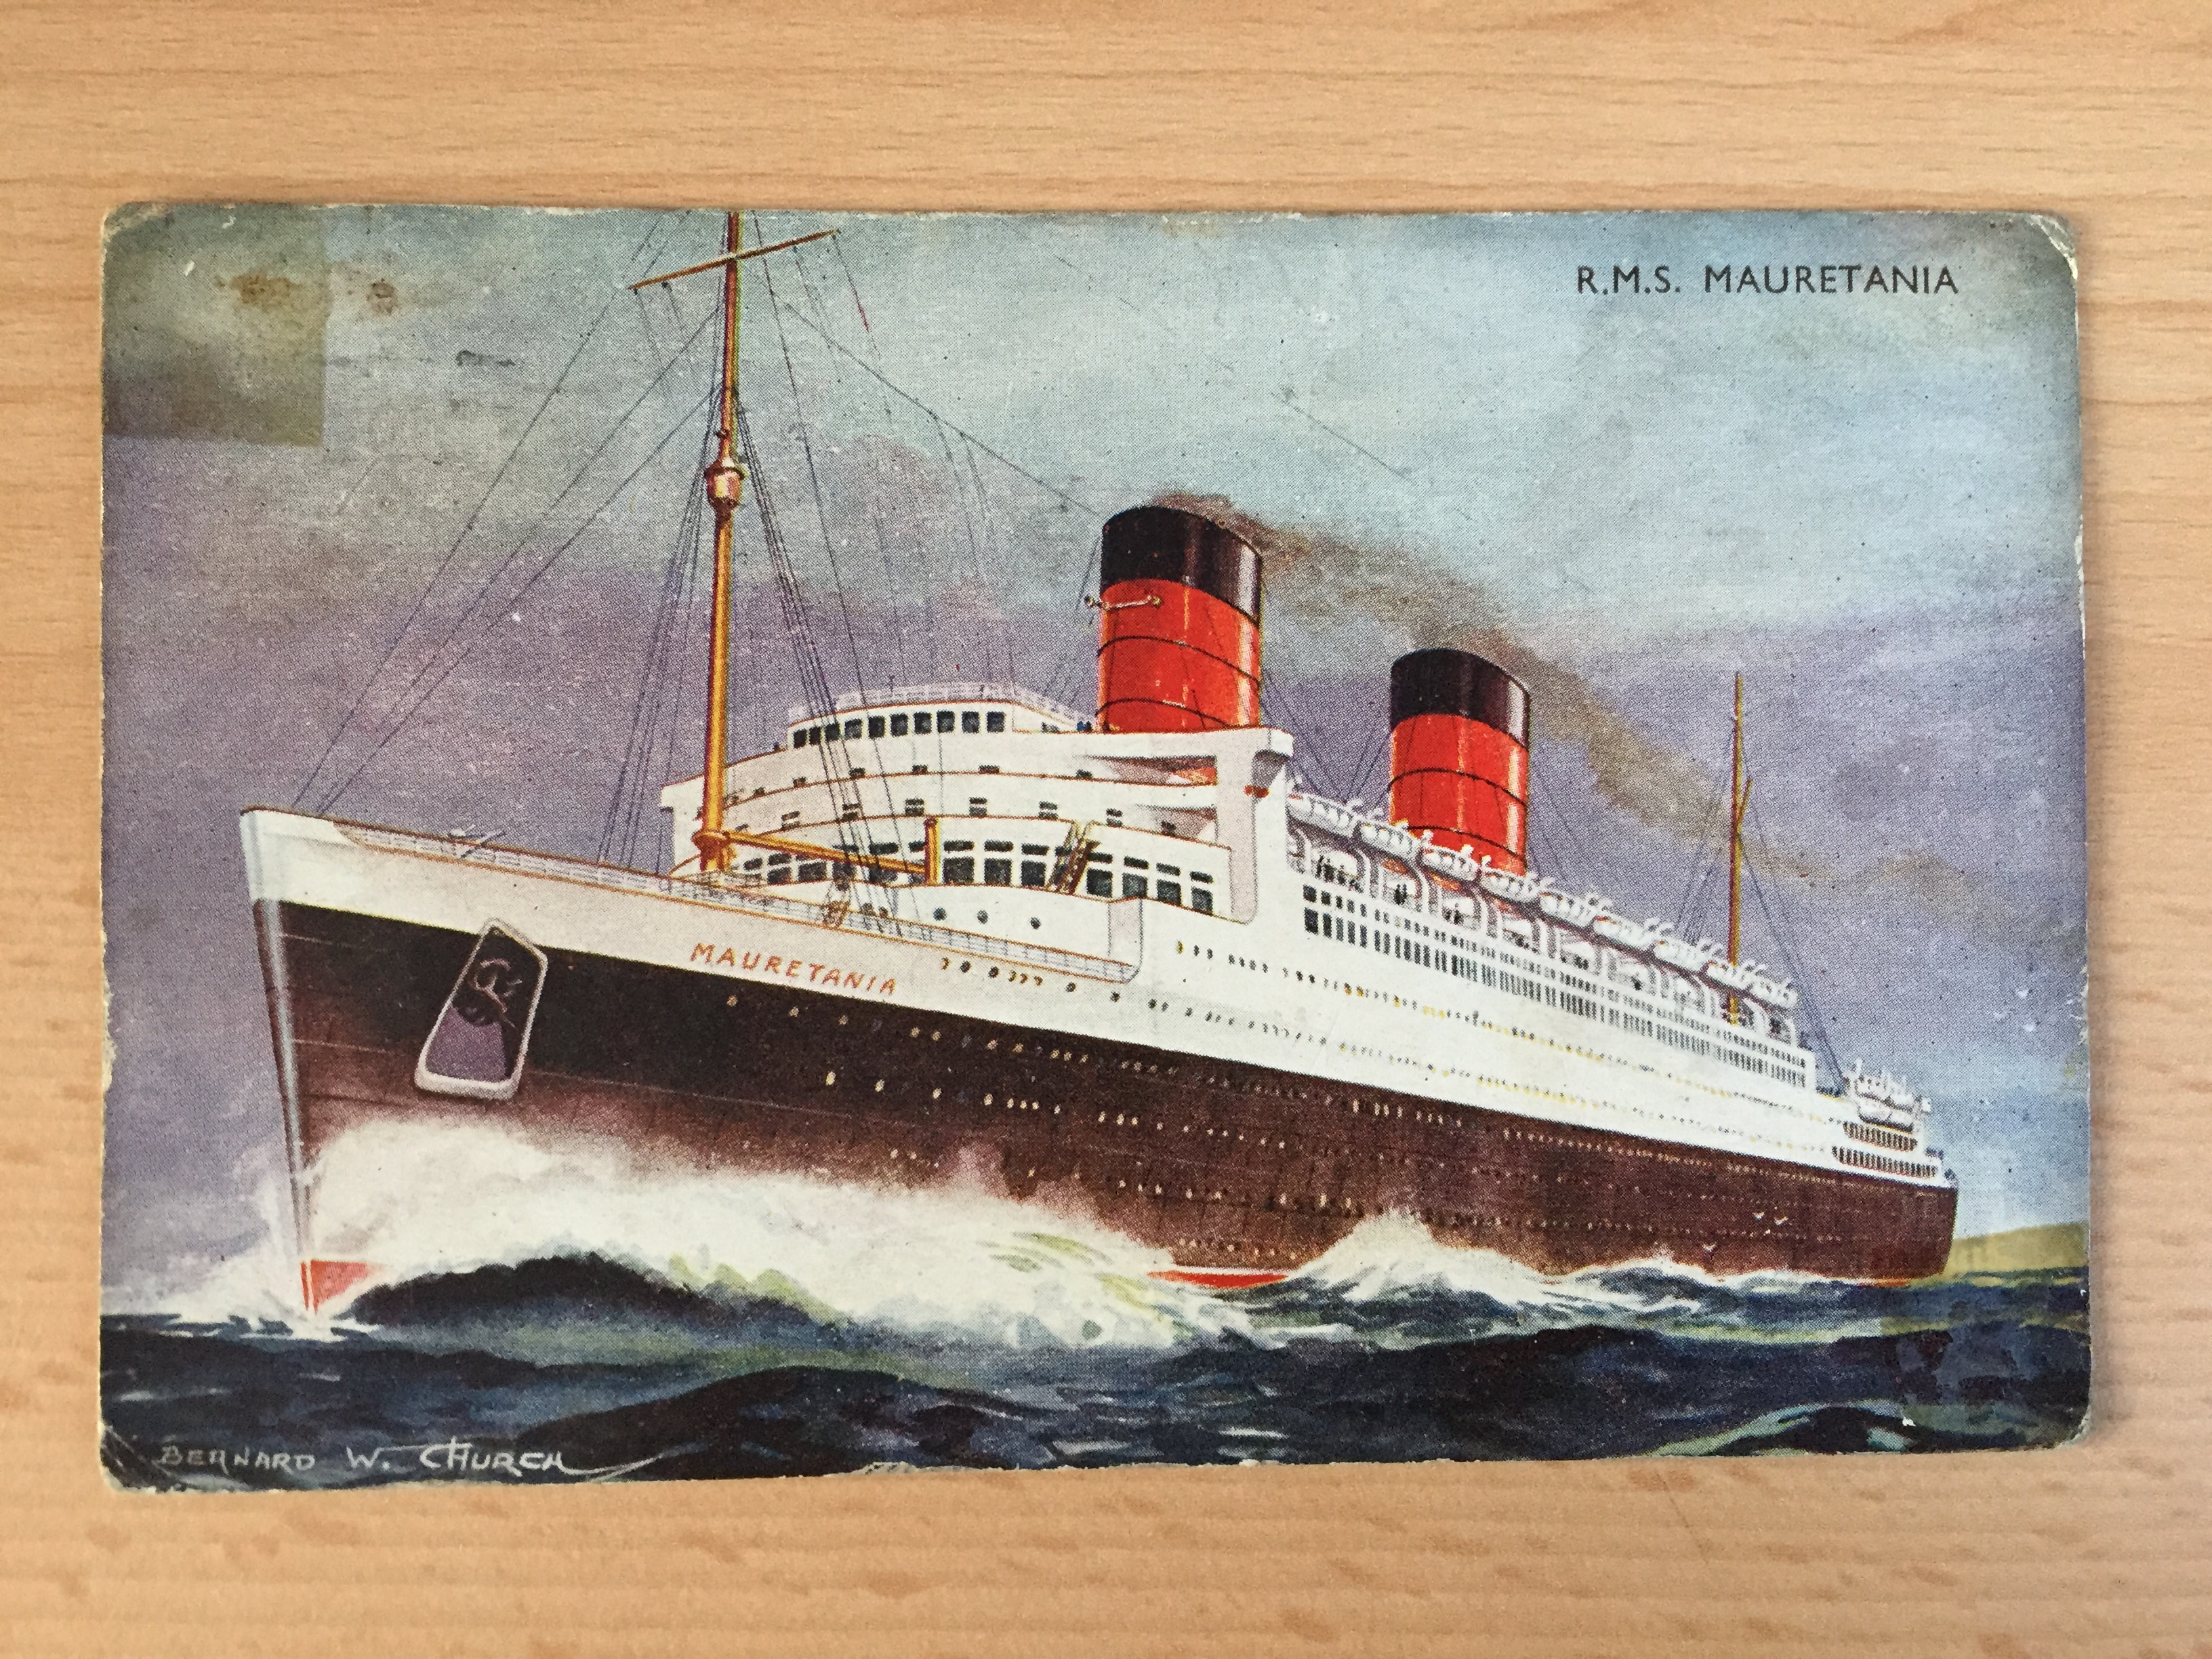 VERY EARLY UNUSED B/W POSTCARD FROM THE WHITE STAR LINE VESSEL THE MAURETANIA